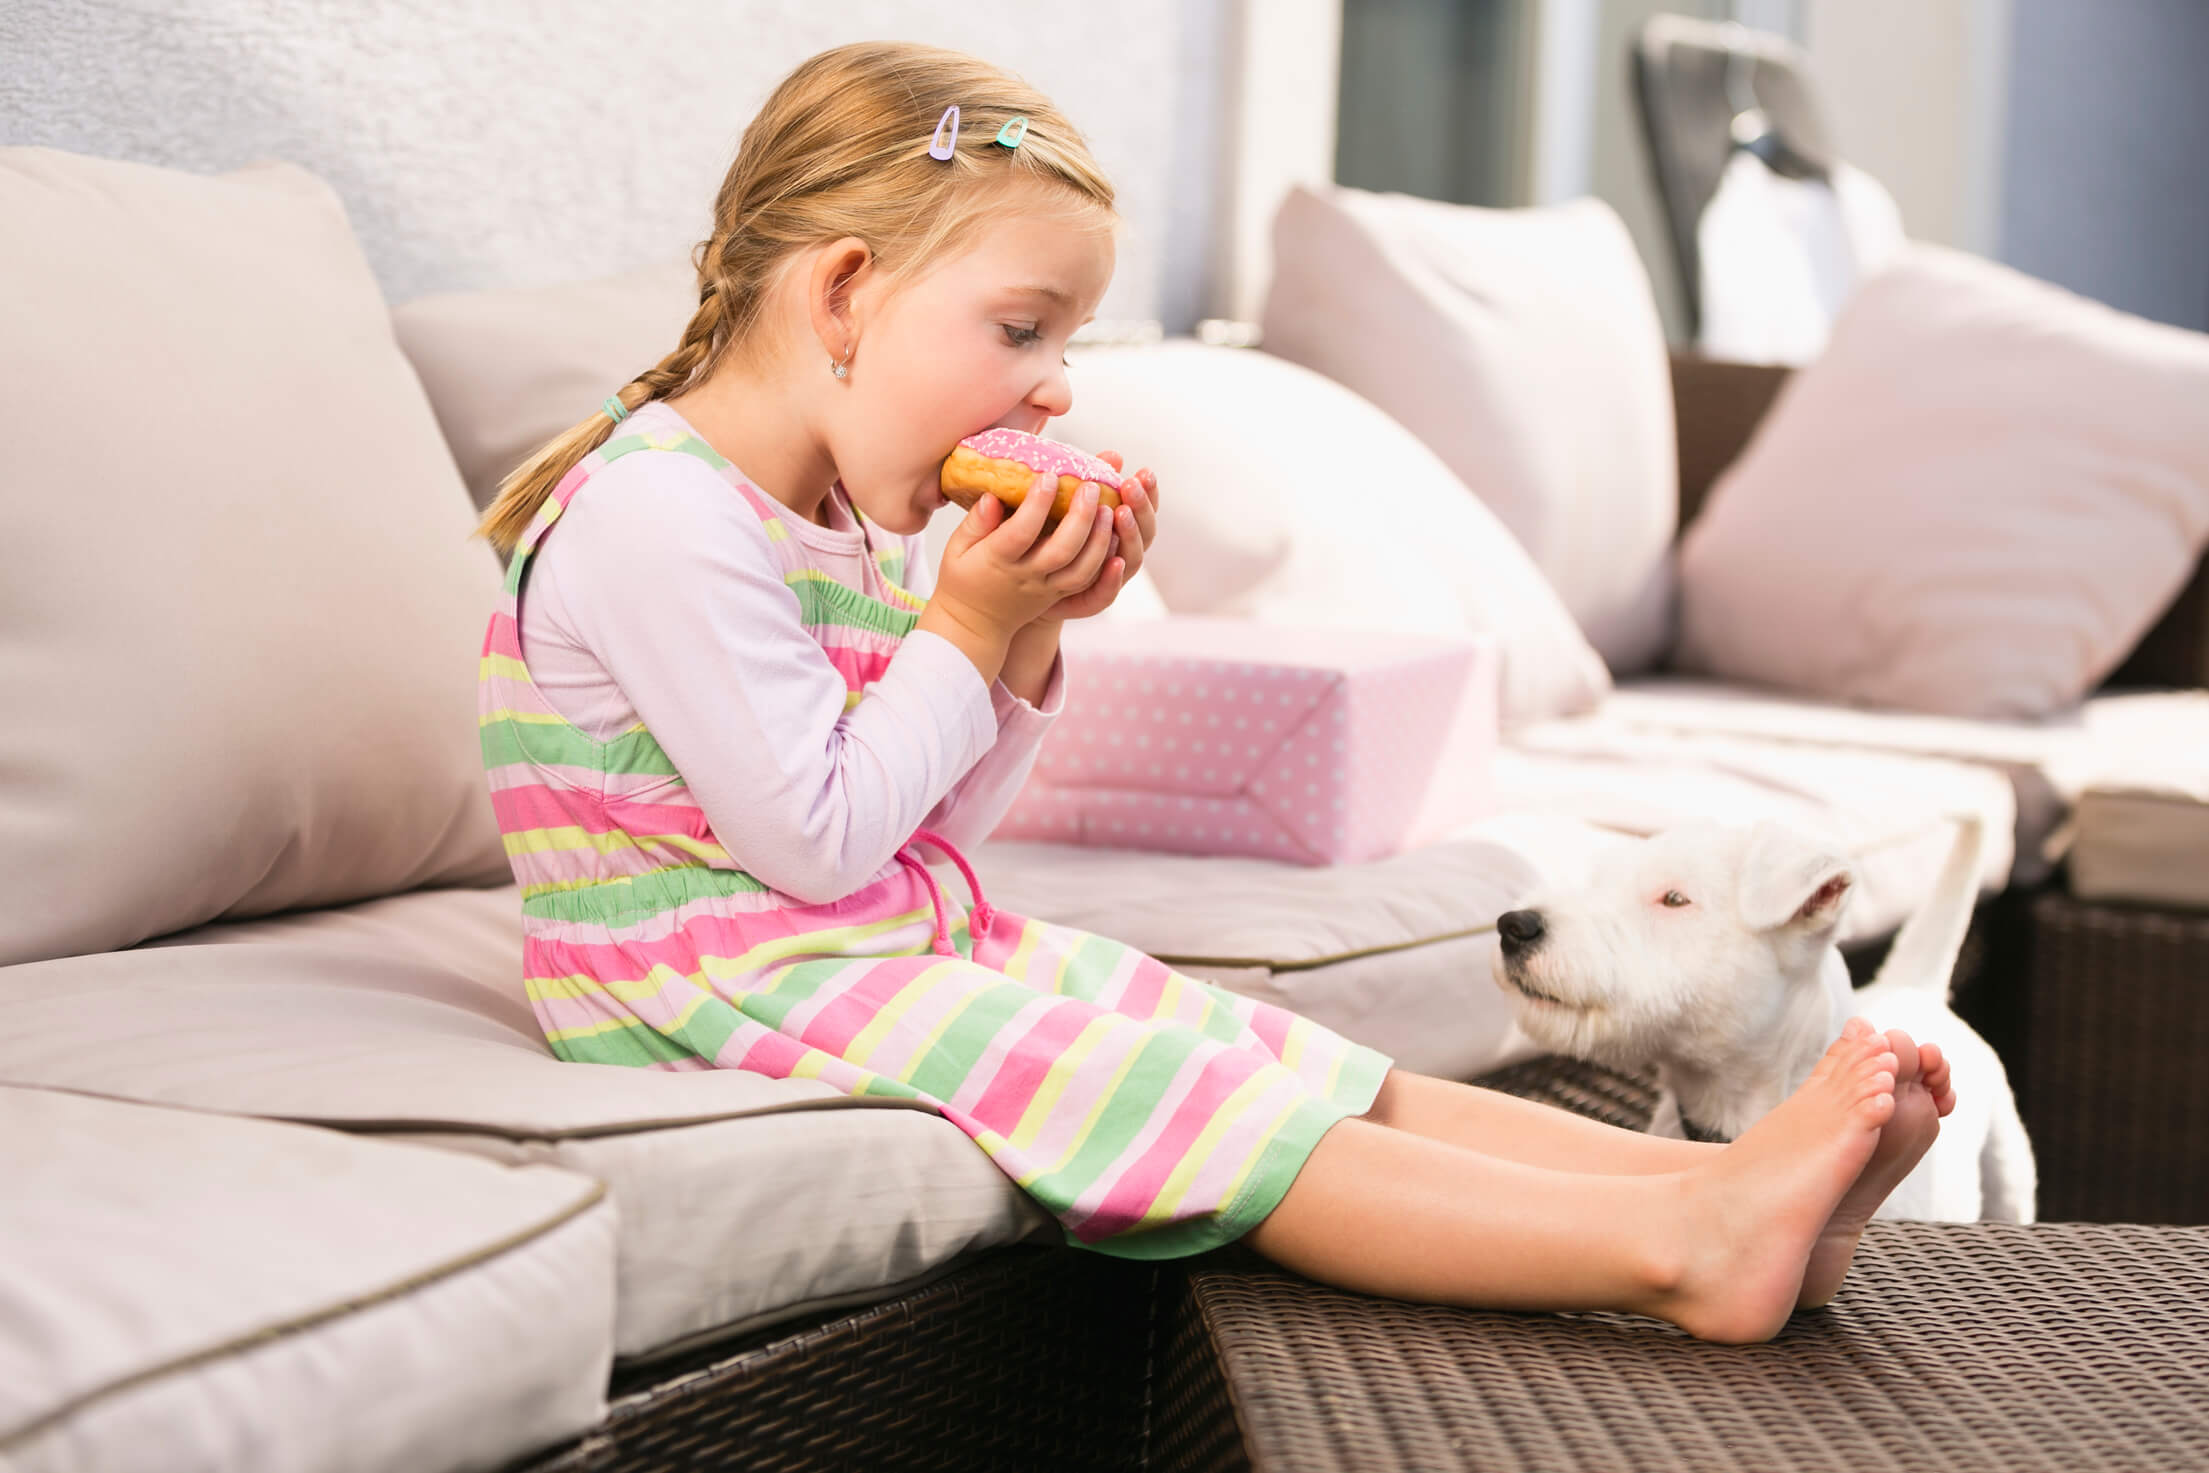 A small white dog sits at a young girls feet as she eats a donut on the couch.